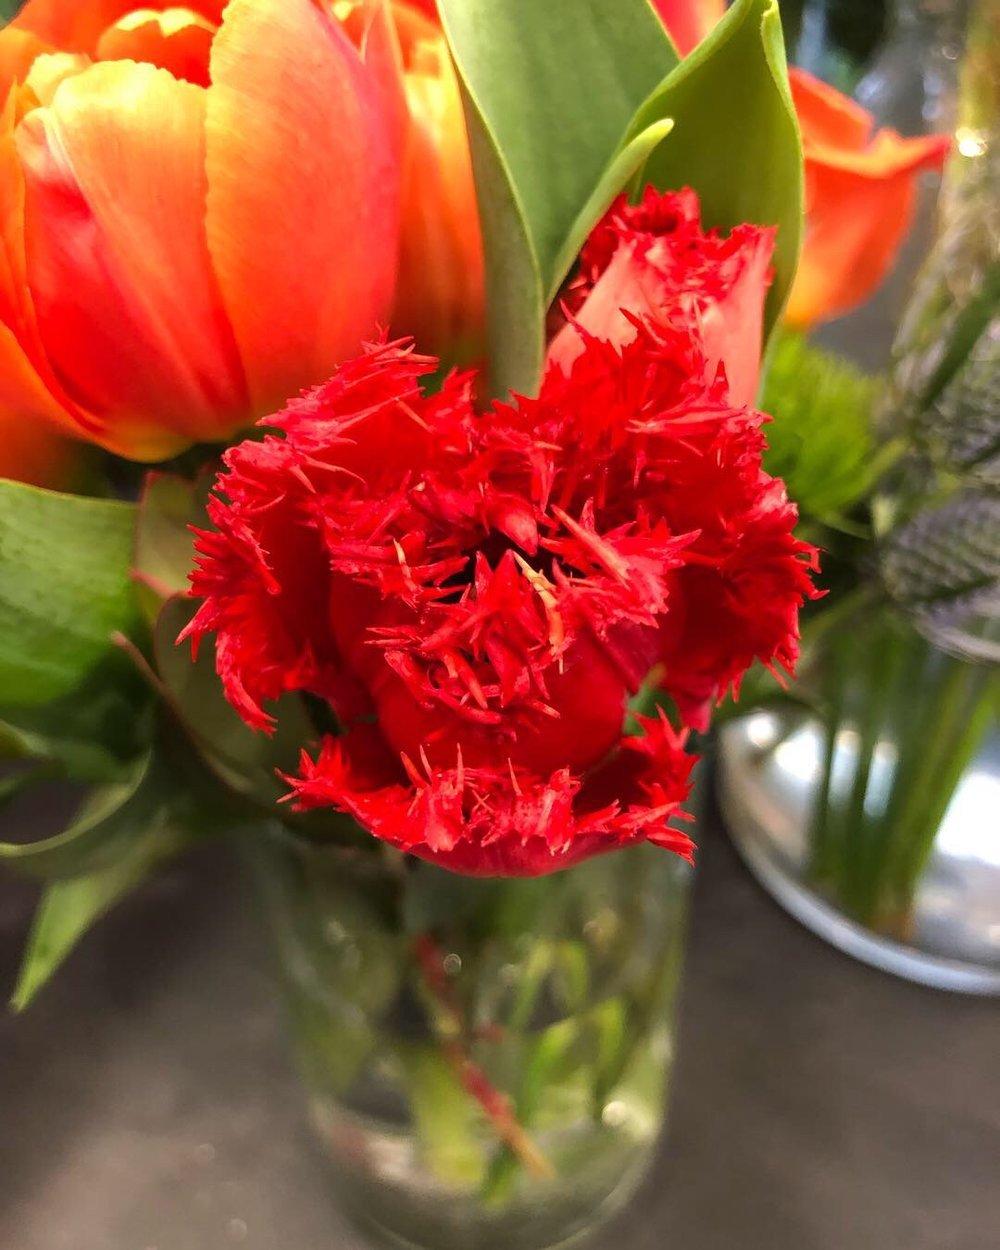 Red bearded tulips at Russo's!